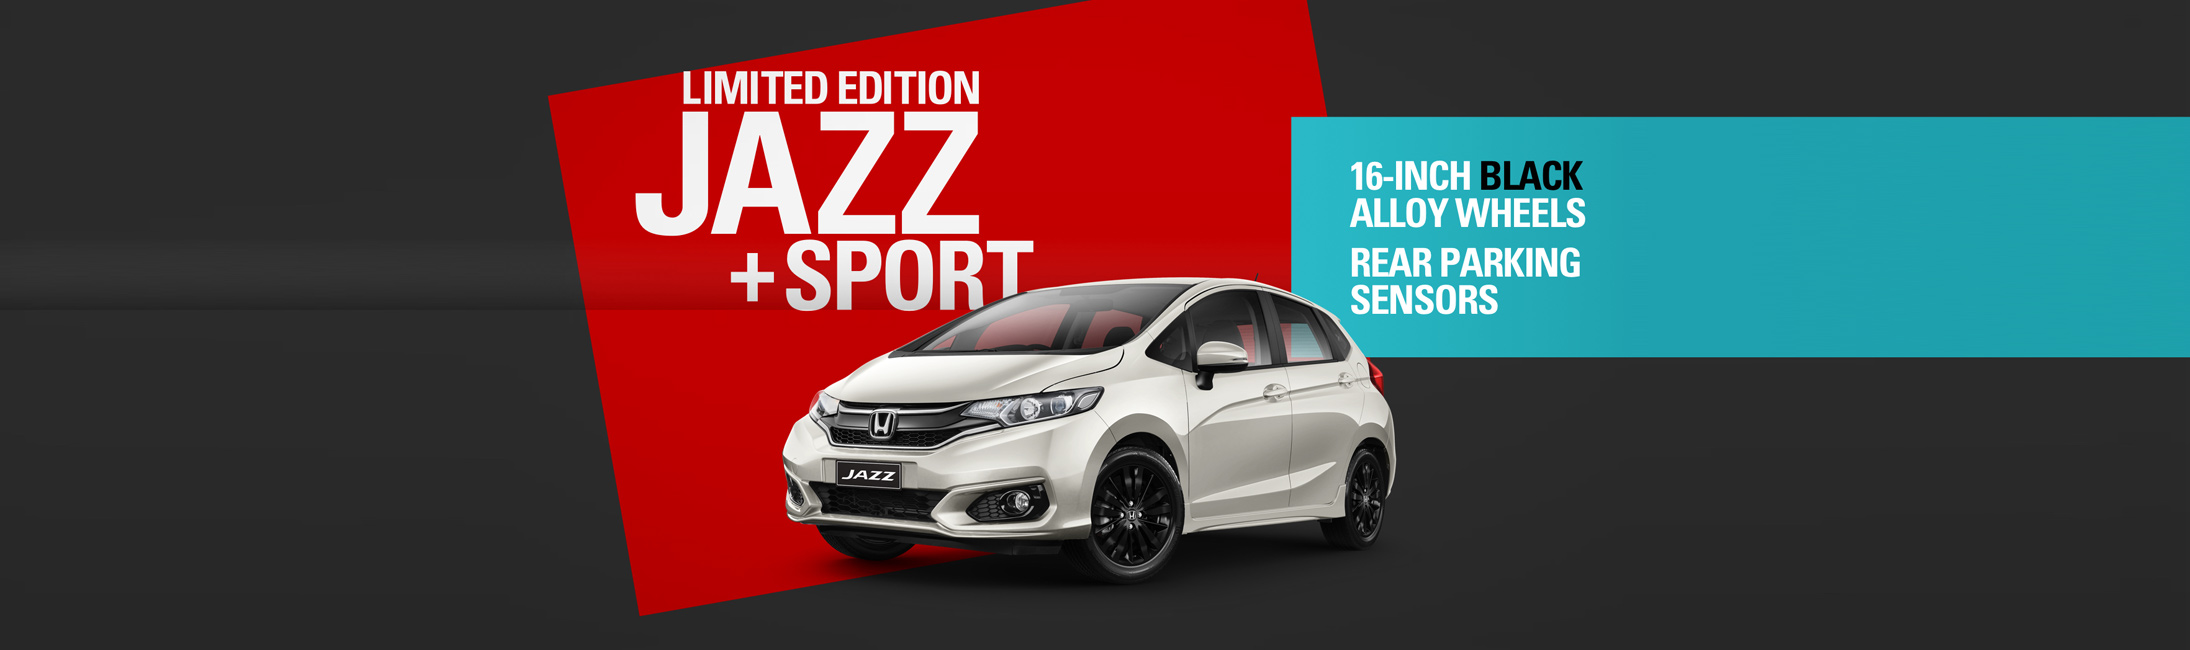 Honda Jazz Limited Edition